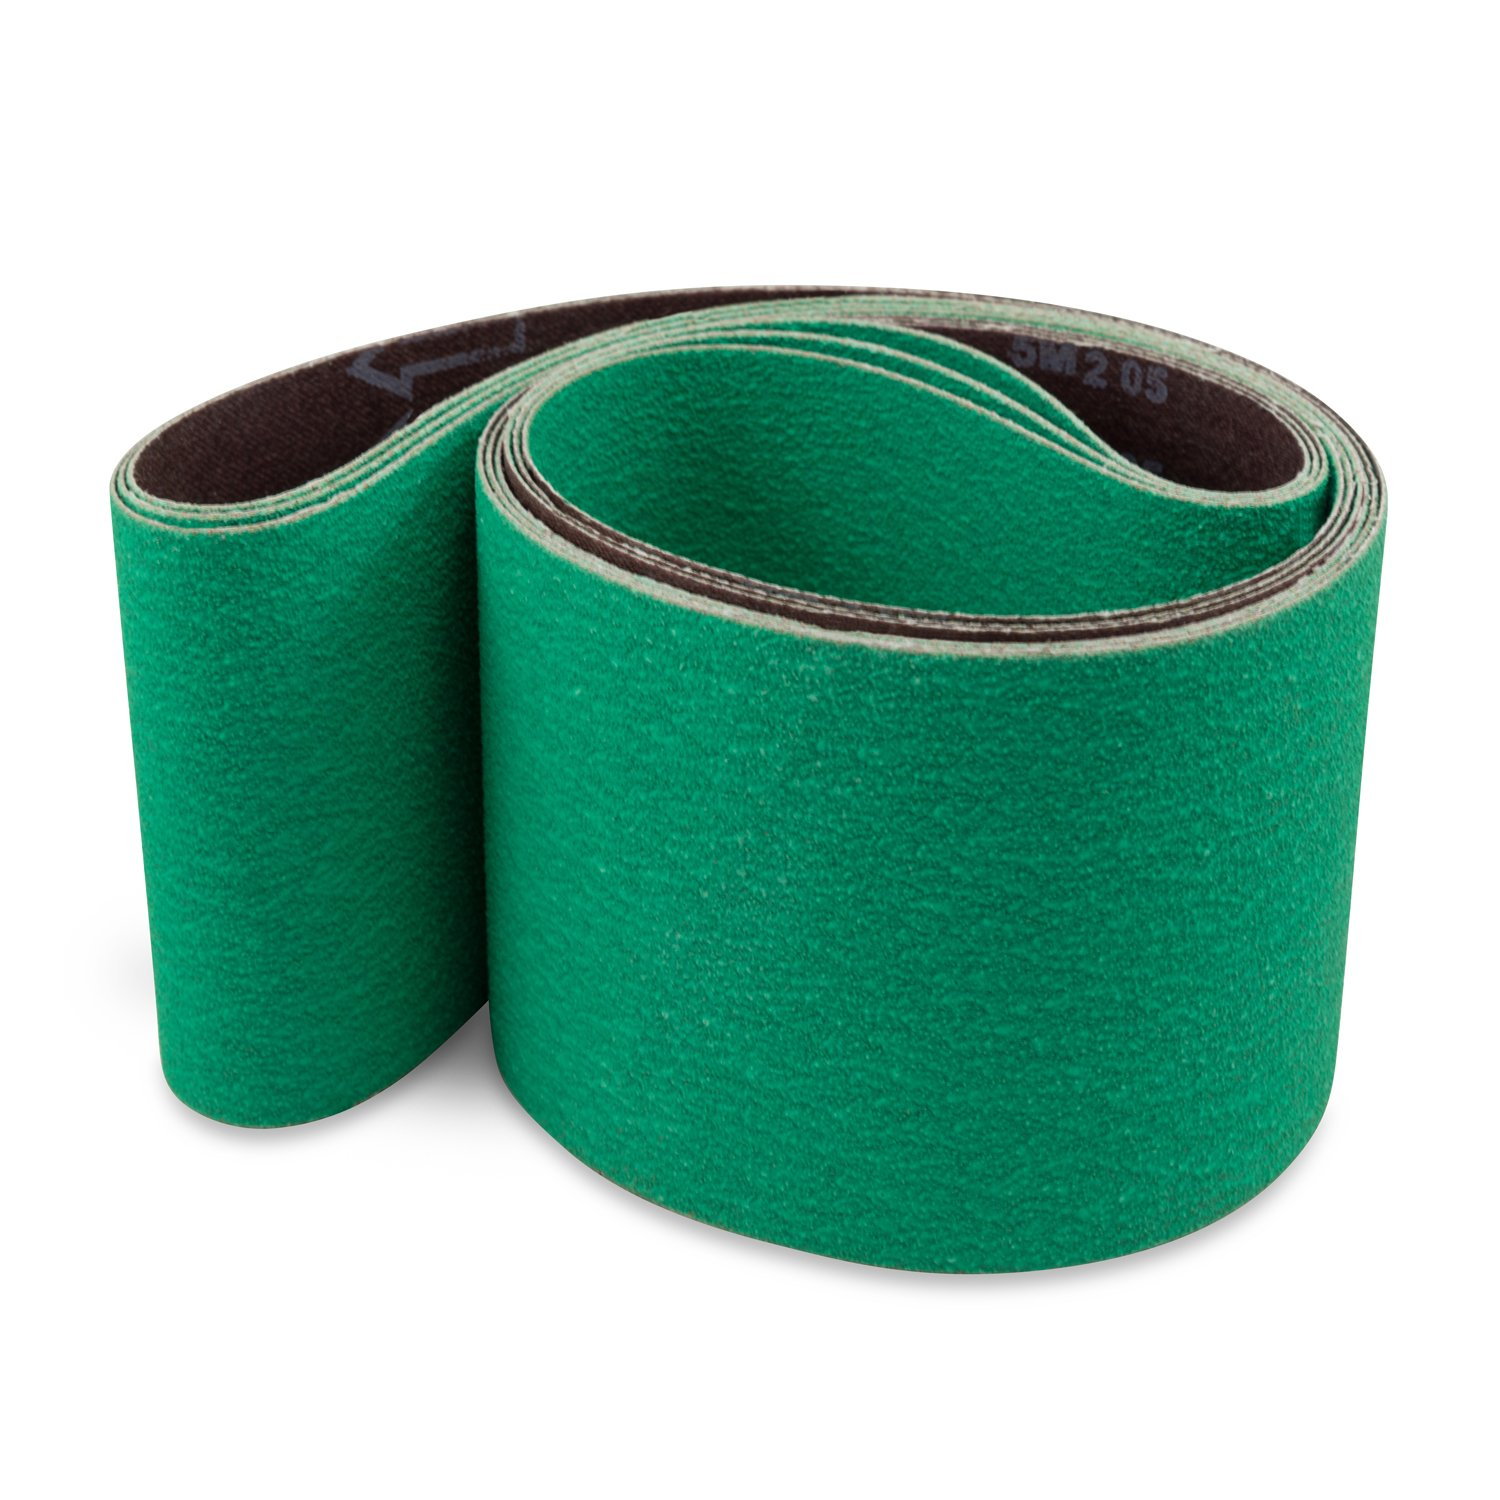 4 X 36 Inch Metal Grinding Ceramic Sanding Belts, Extra Long Life, 3 Pack by Red Label Abrasives